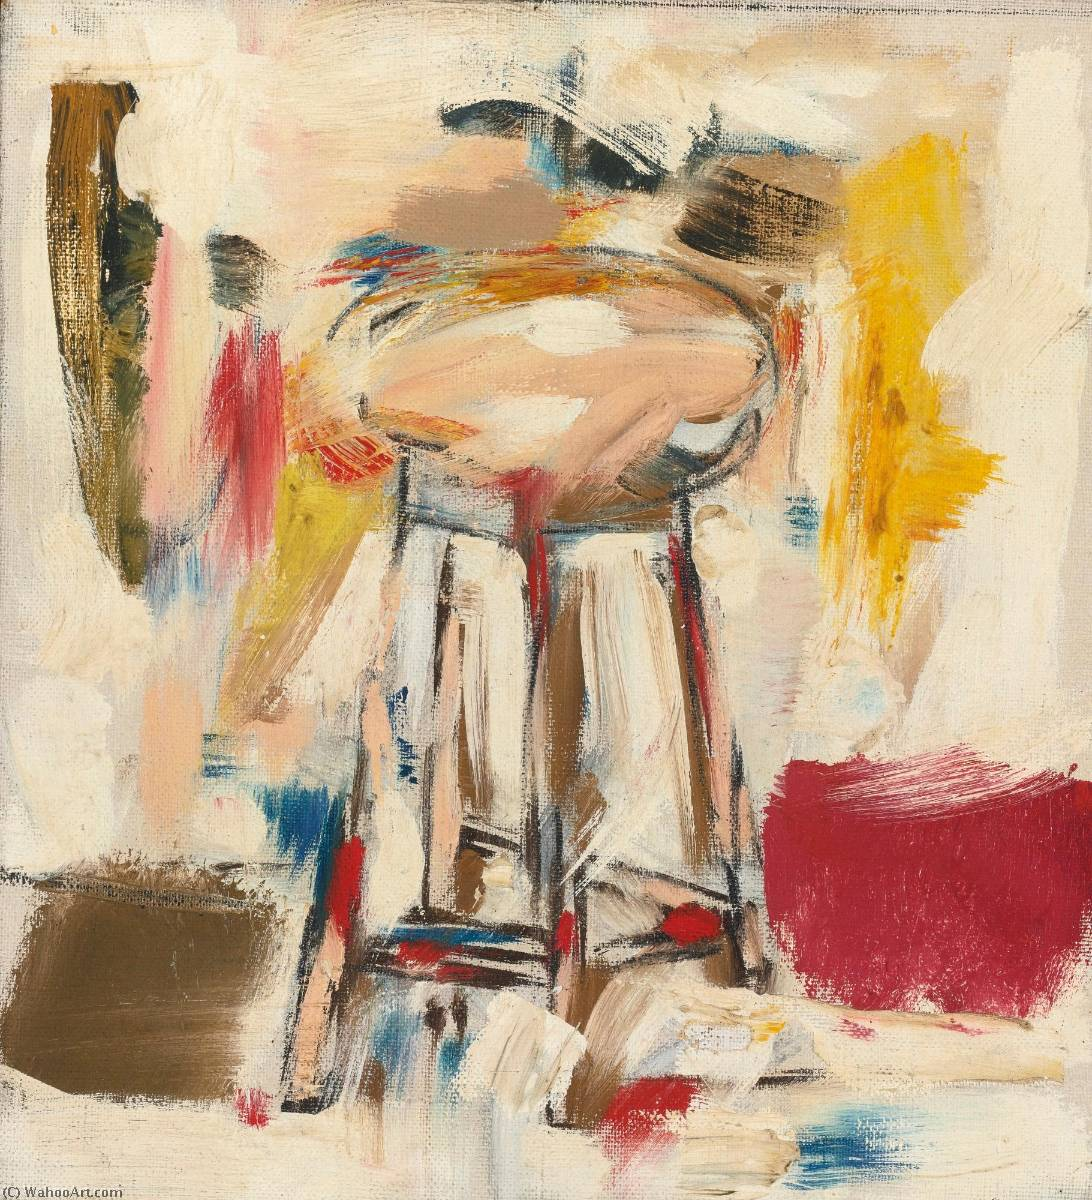 Untitled (Stool), Oil On Canvas by Michael Goldberg (1924-2007, United States)